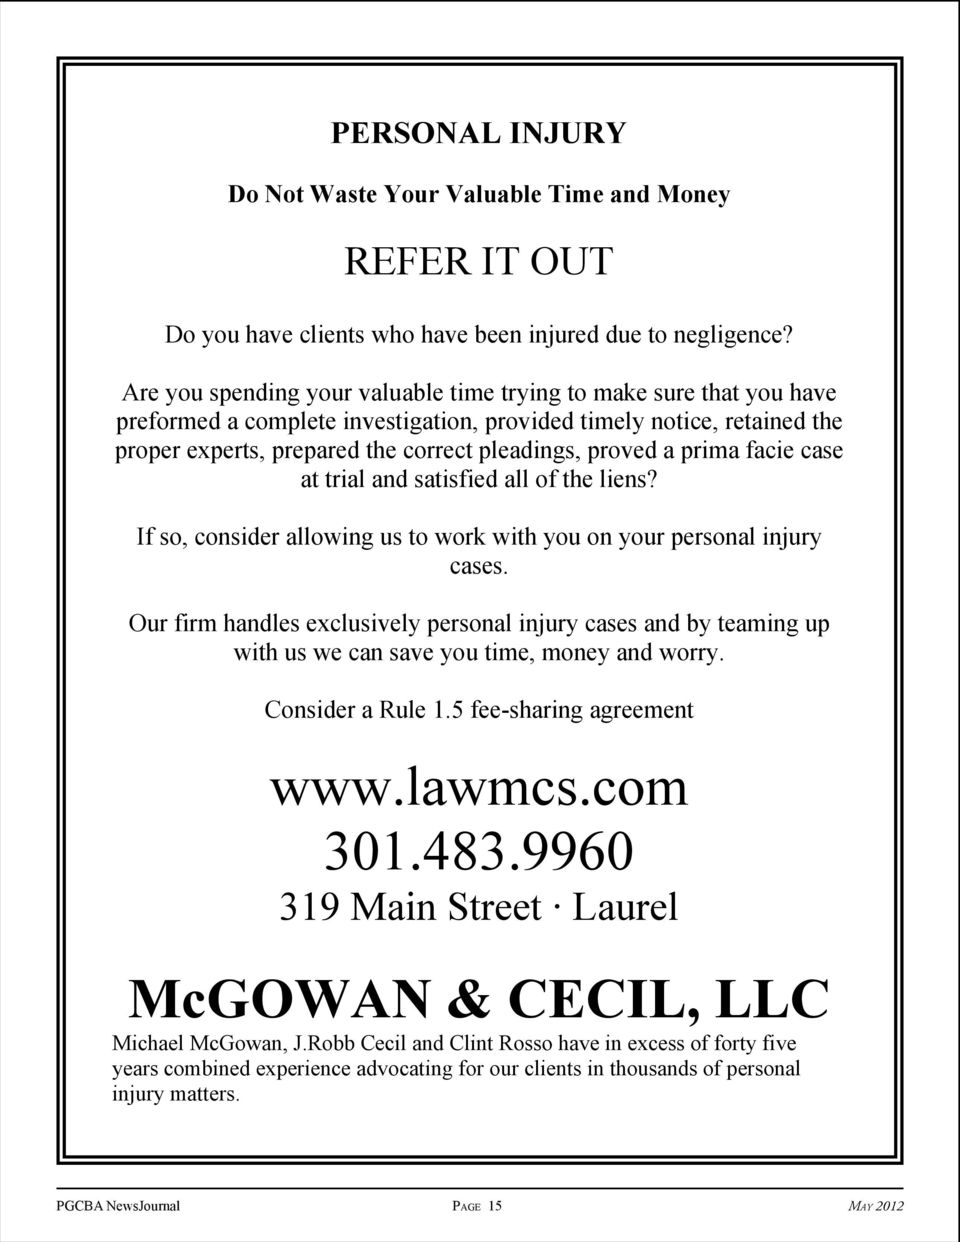 prima facie case at trial and satisfied all of the liens? If so, consider allowing us to work with you on your personal injury cases.